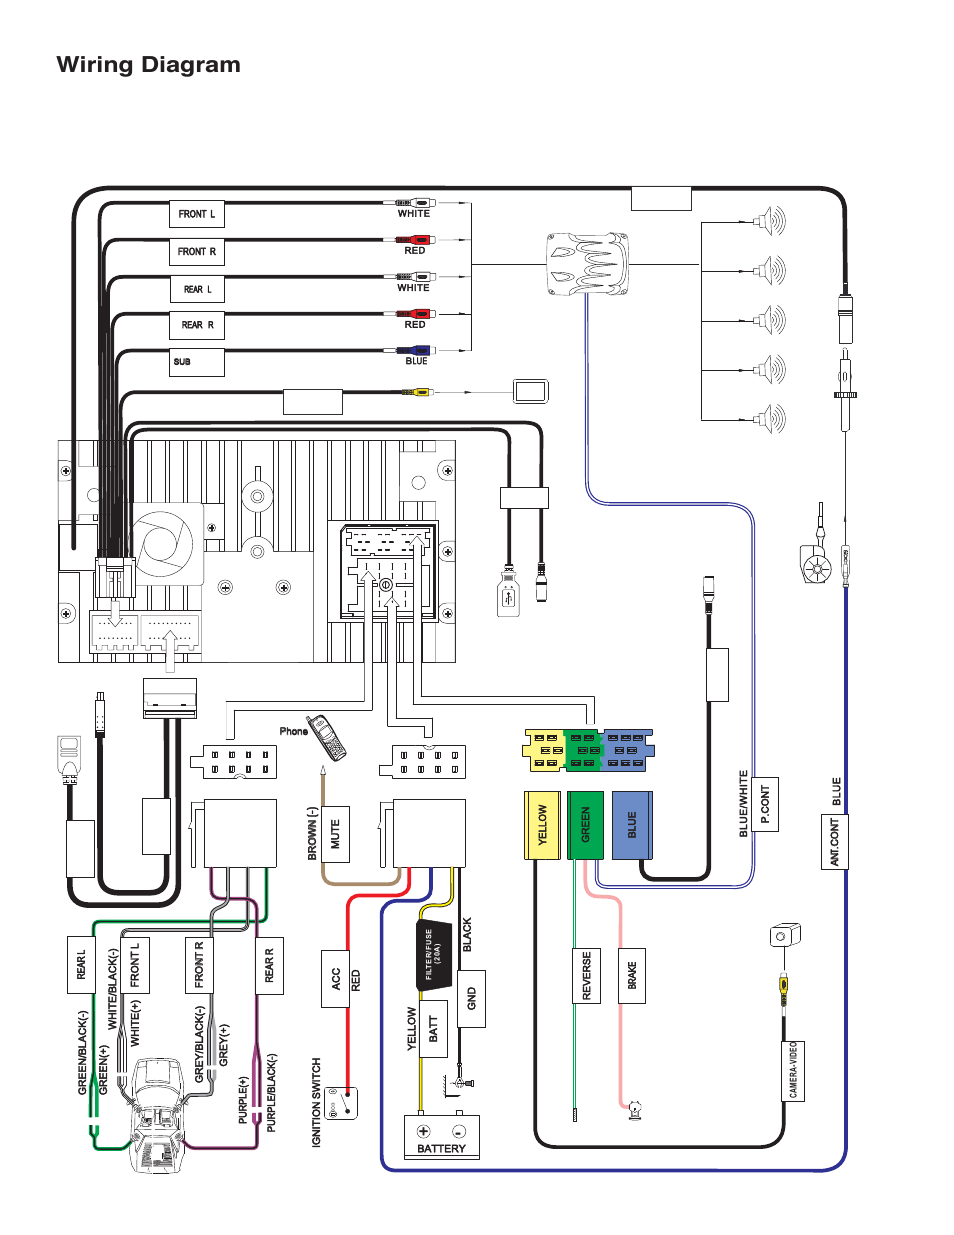 Manual Viper 5002 Wiring Diagram Mercedes W113 Array 25 Images Rh Highcare Asia